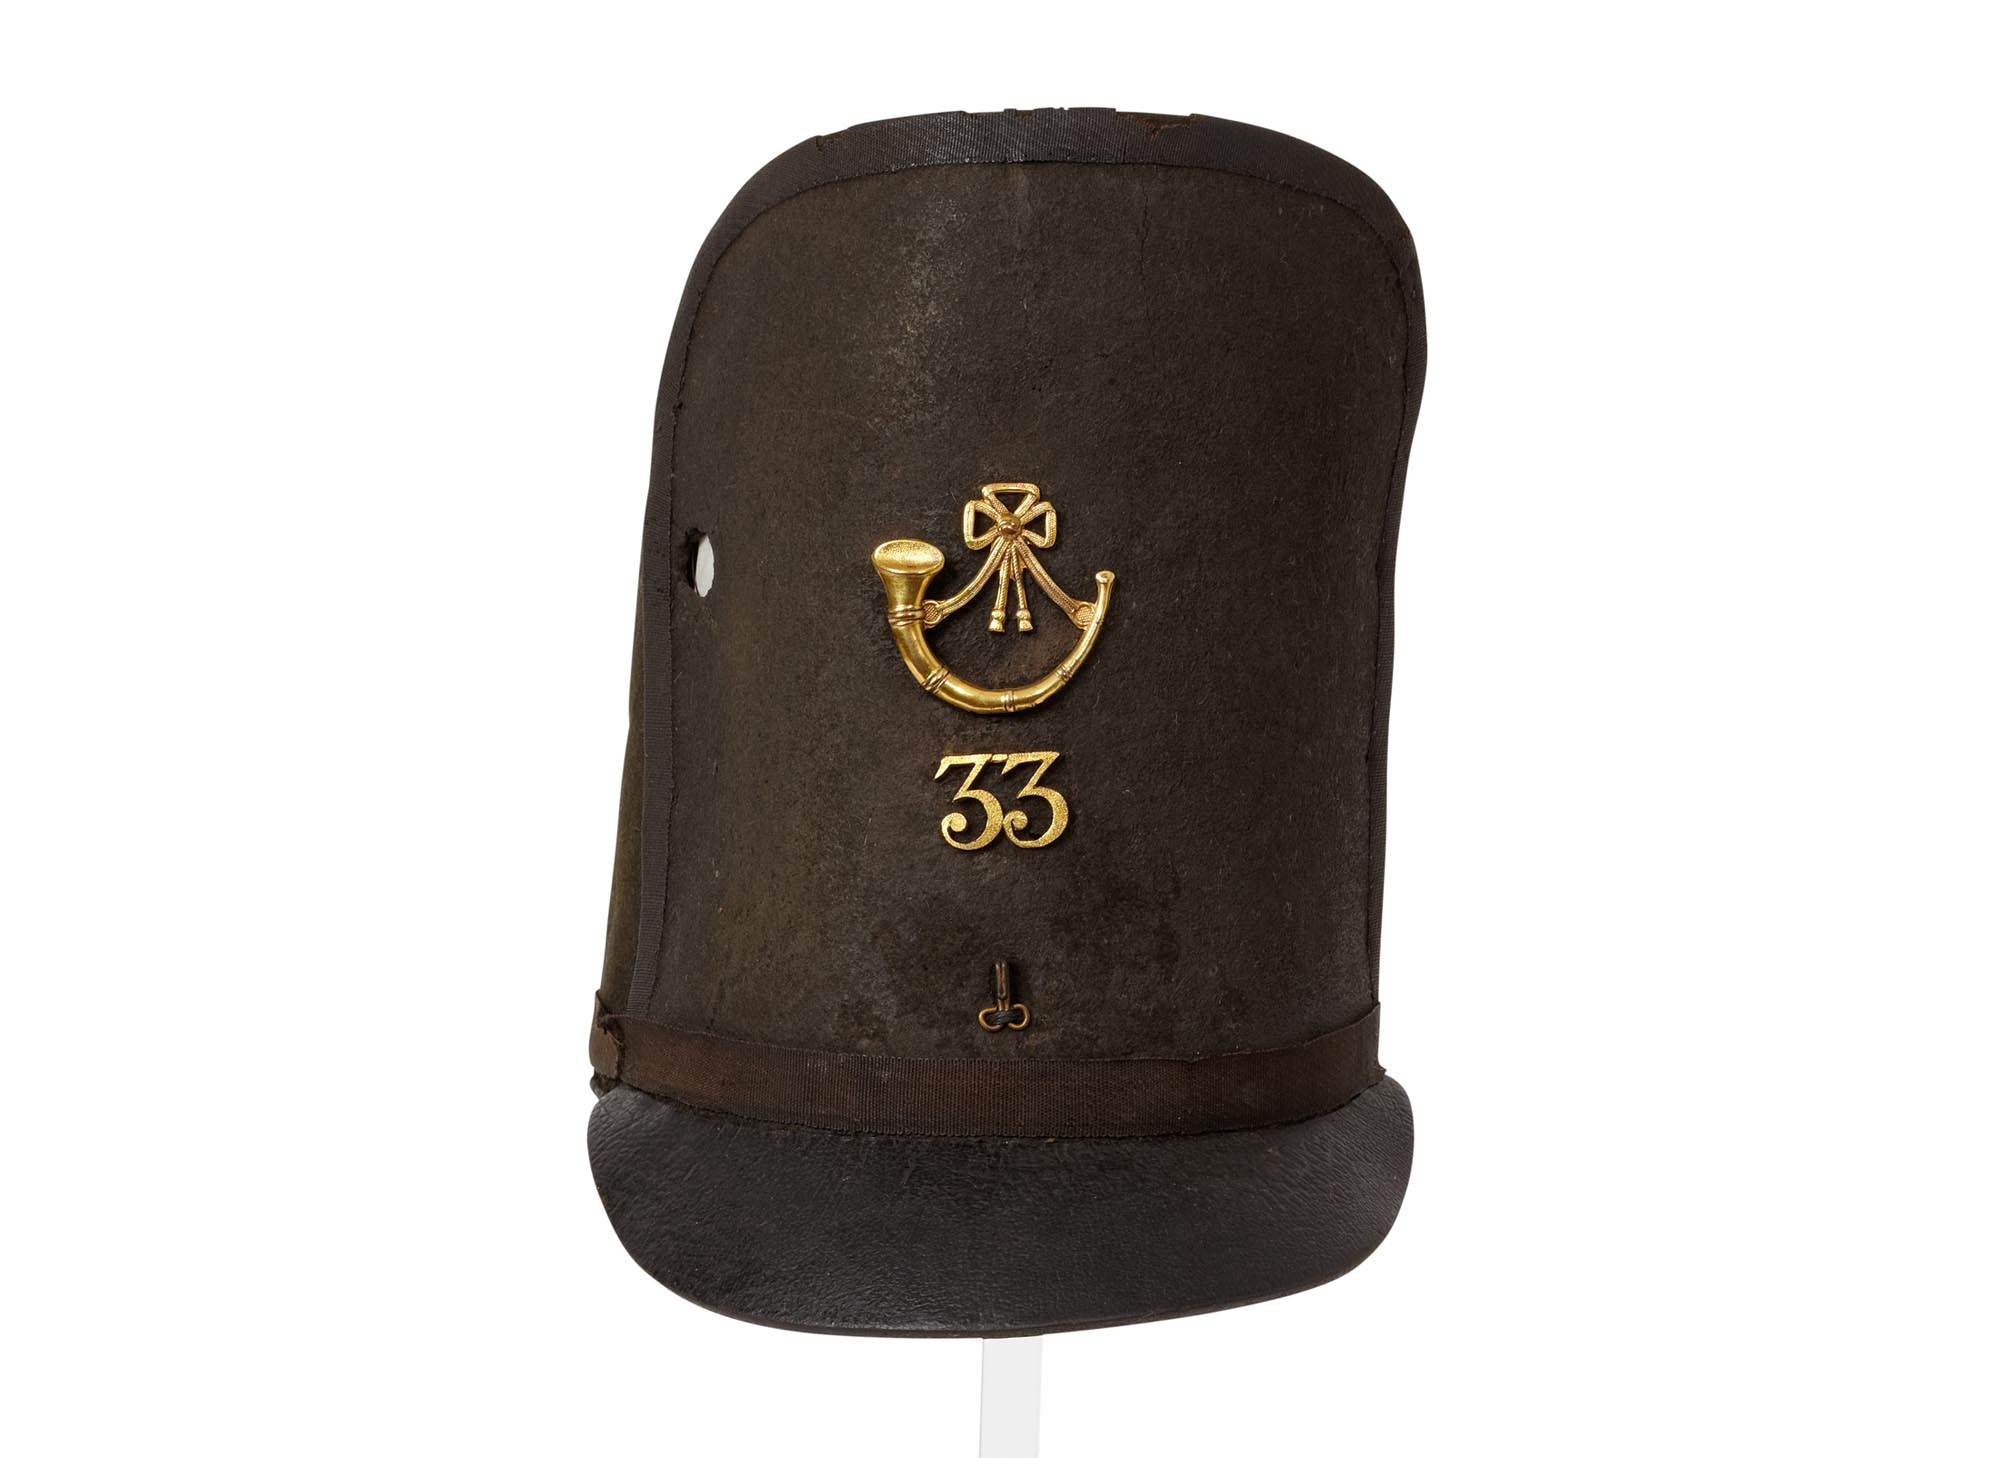 a photo of a tall felt cap with a bullet hole in the side